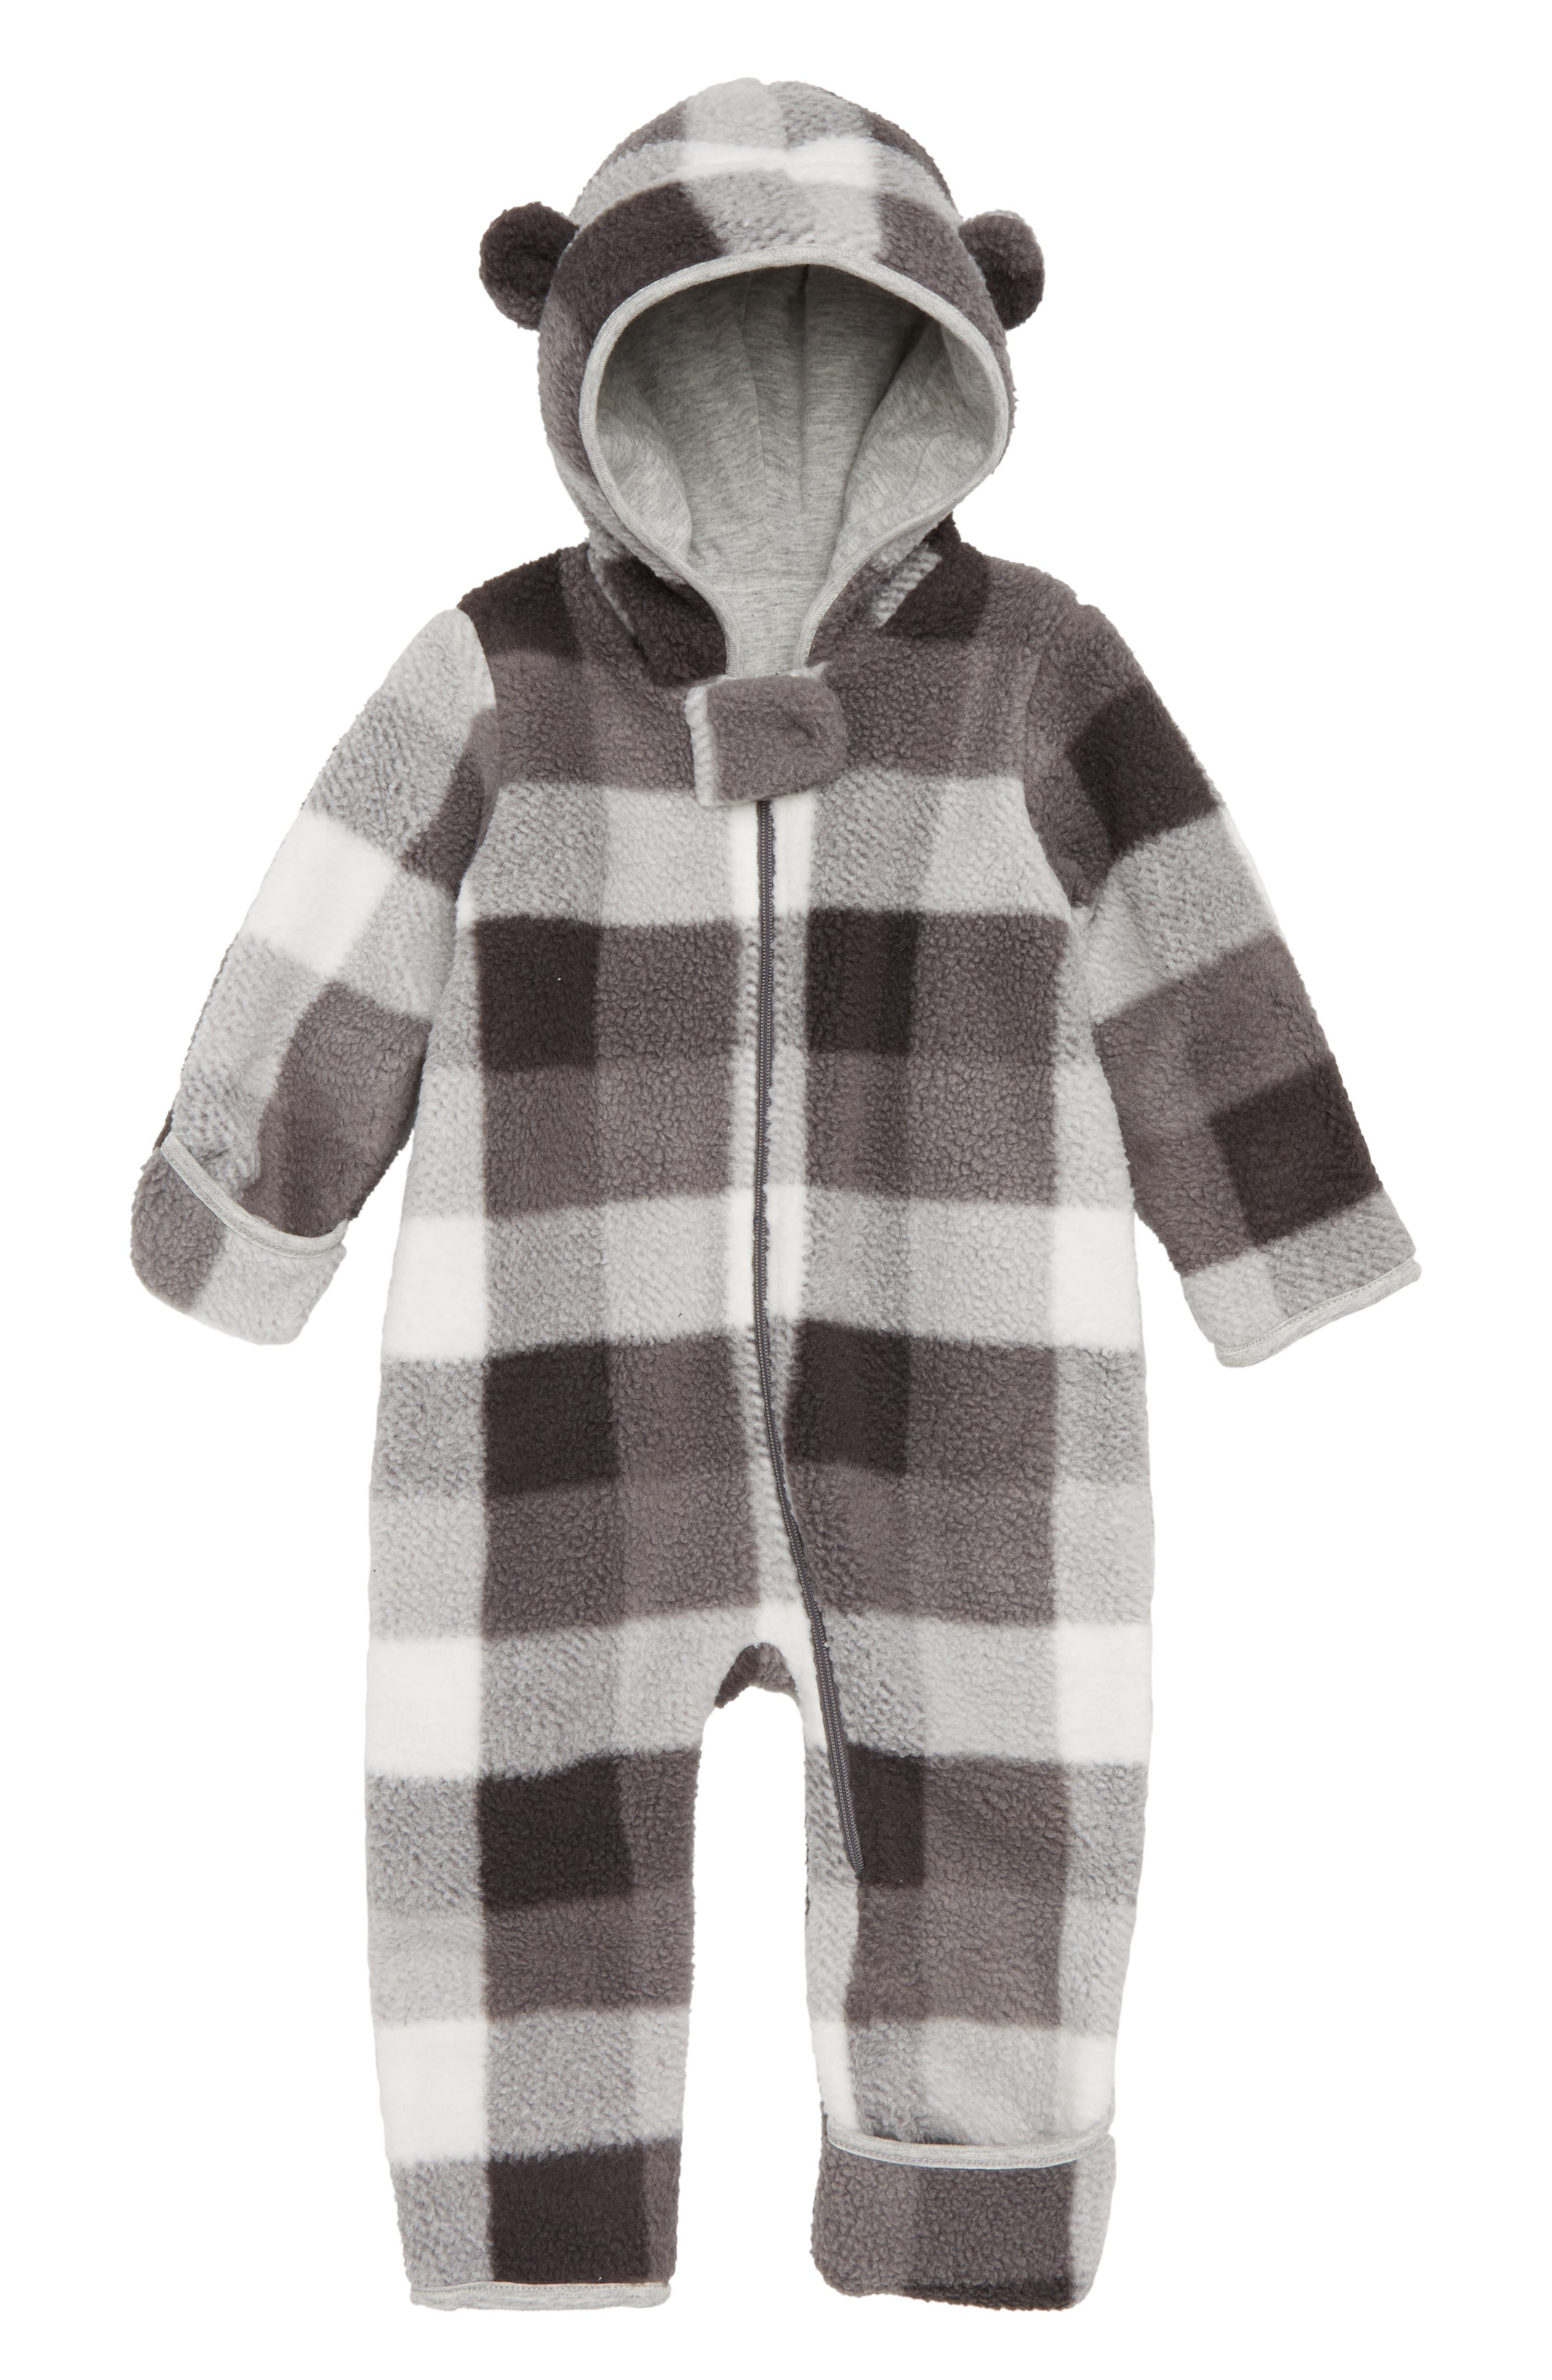 e8d12dd2b sleek 00daa 46ce9 patagonia kids clothing baby bunting suits more ...